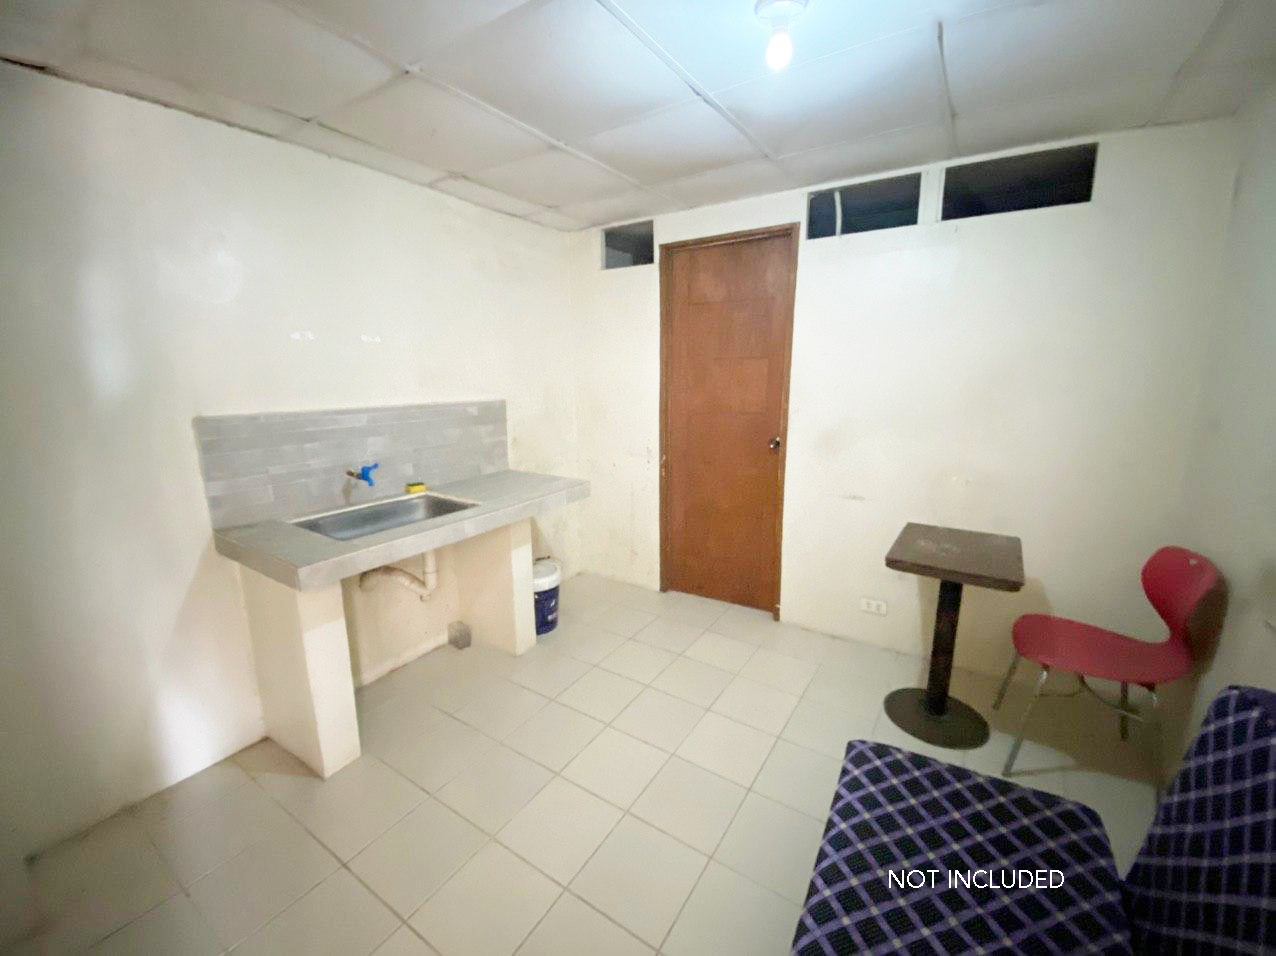 1 Bed Room Apartment Unit for Rent in San Fernando Pampanga